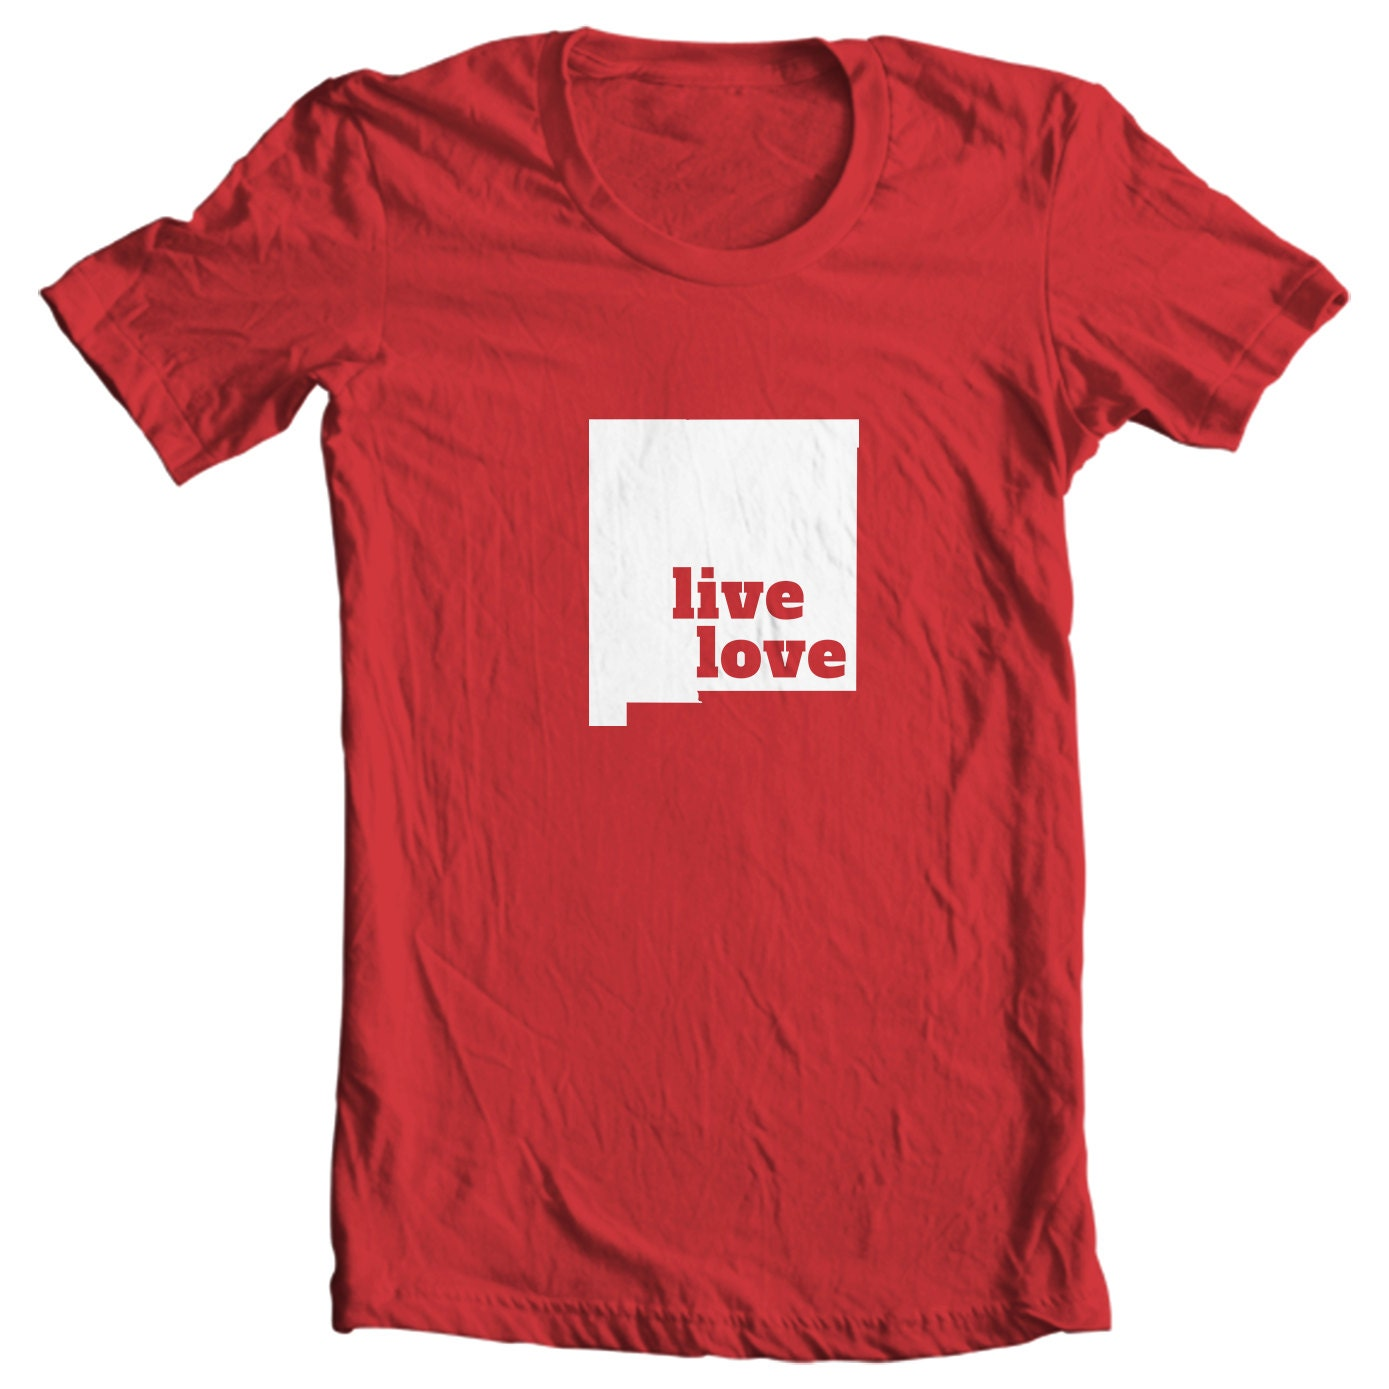 New Mexico T-shirt - Live Love New Mexico - My State New Mexico T-shirt